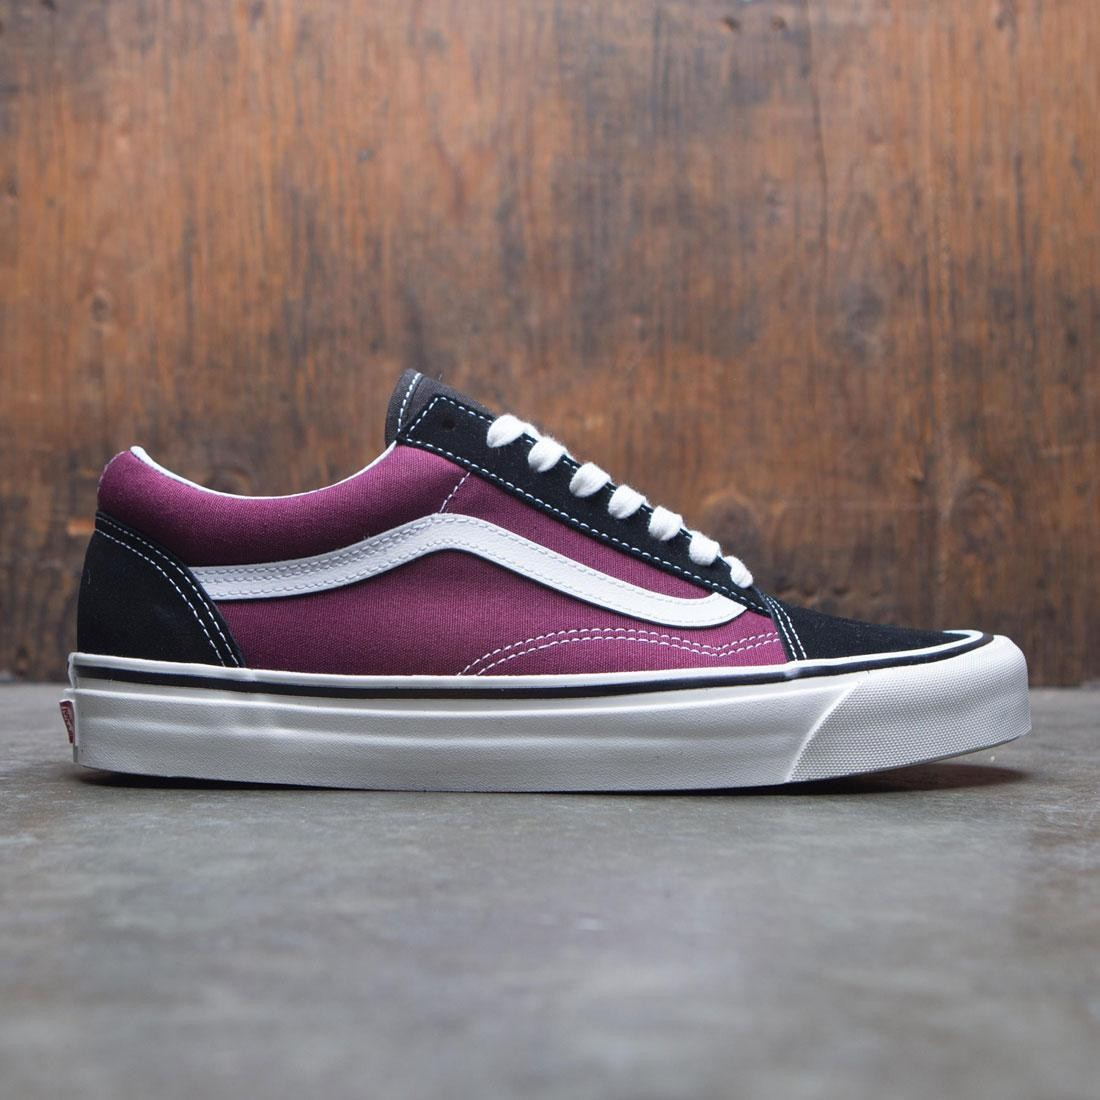 ece60c9b82 Vans Men Old Skool DX - Anaheim burgundy white black